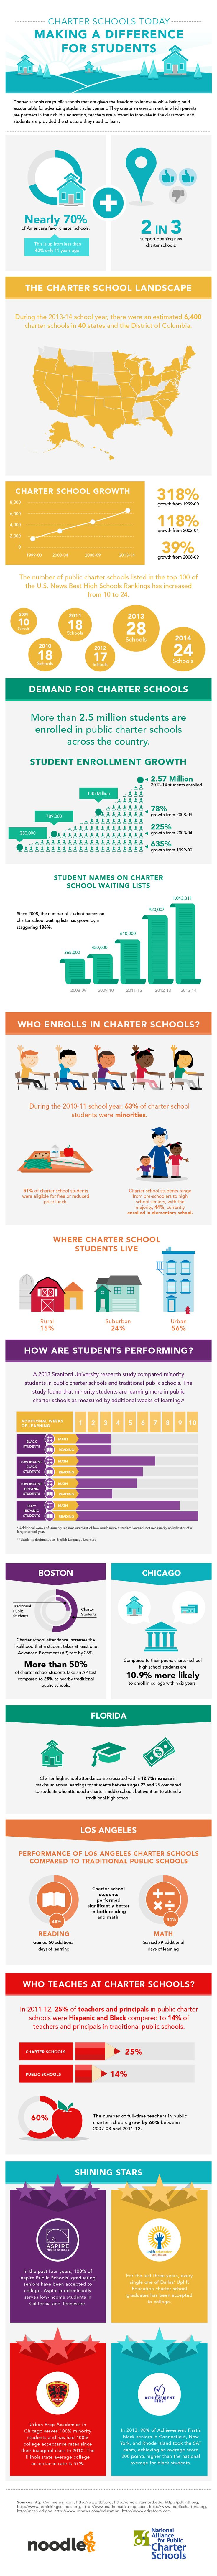 This infographic was created in partnership with the National Alliance of Public Charter Schools.